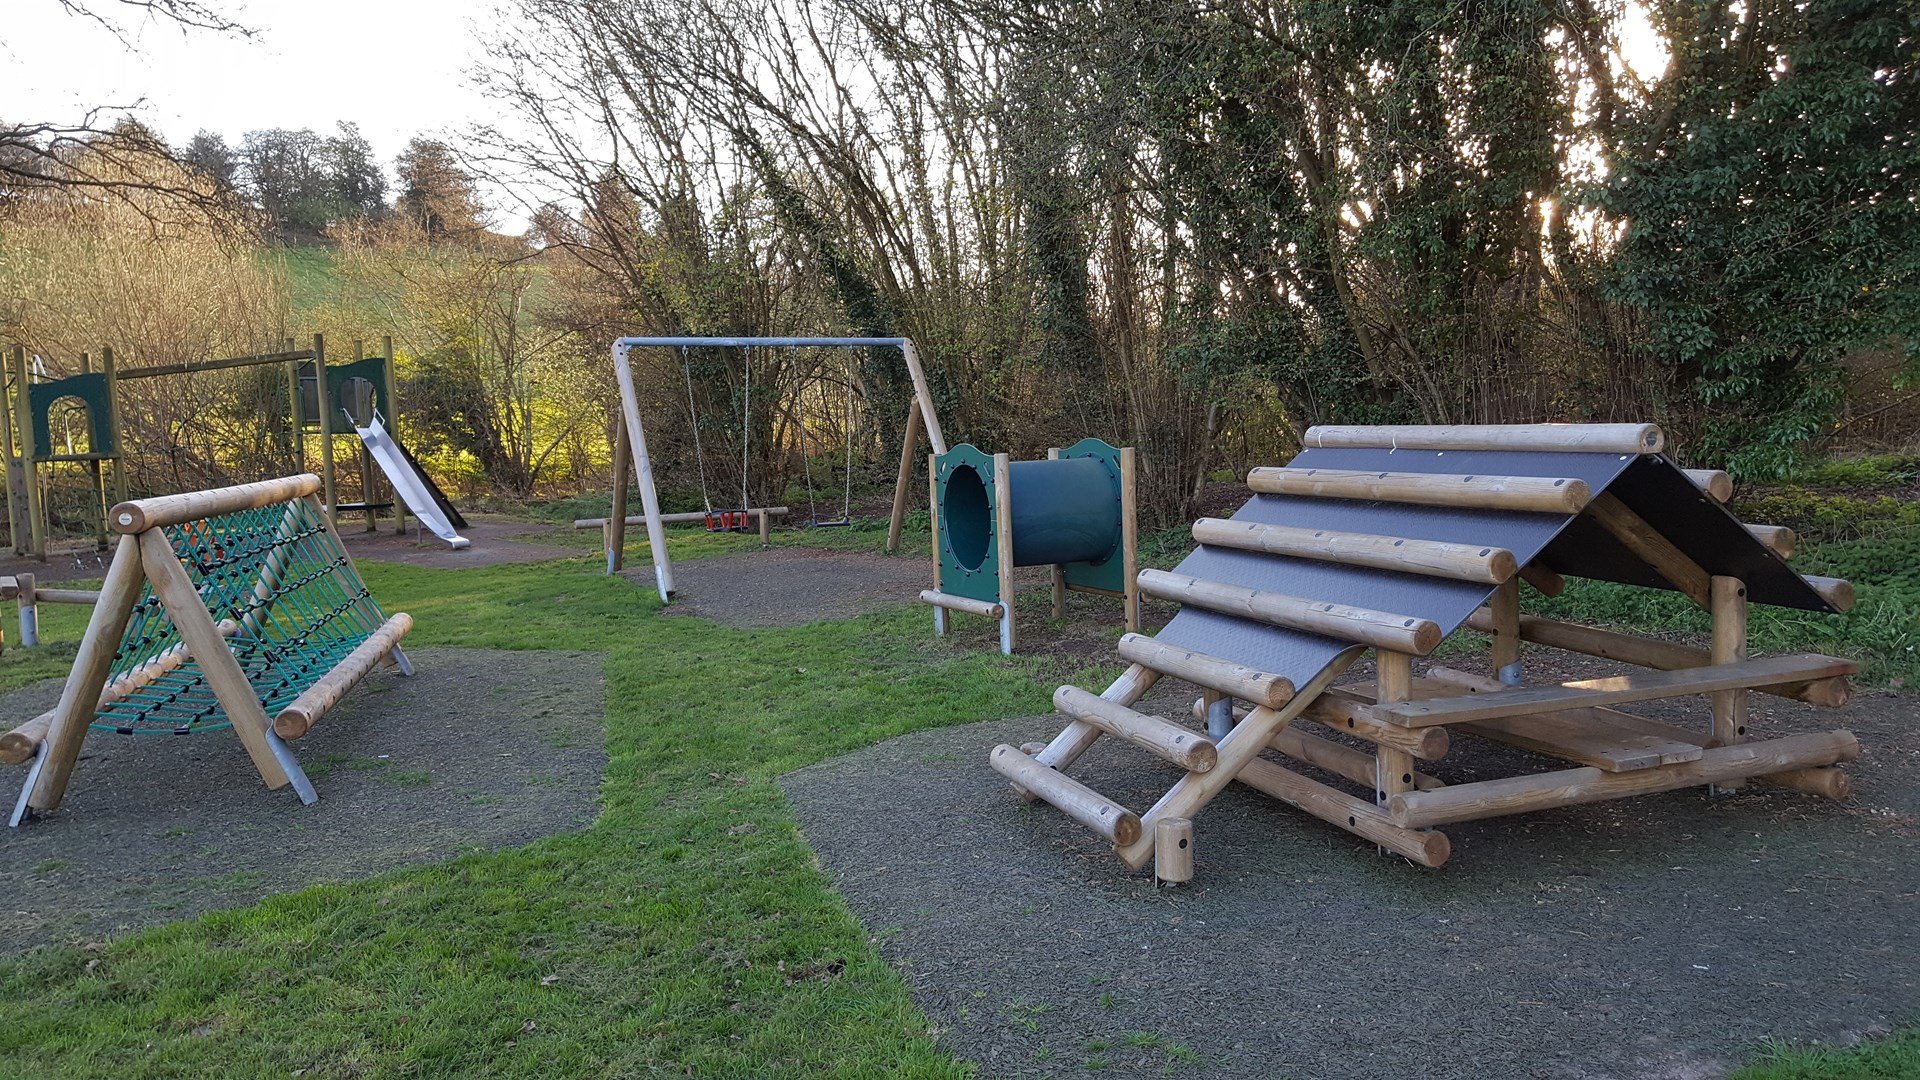 The playground at Abinger Hammer was refurbished by Abinger Parish Council in 2016